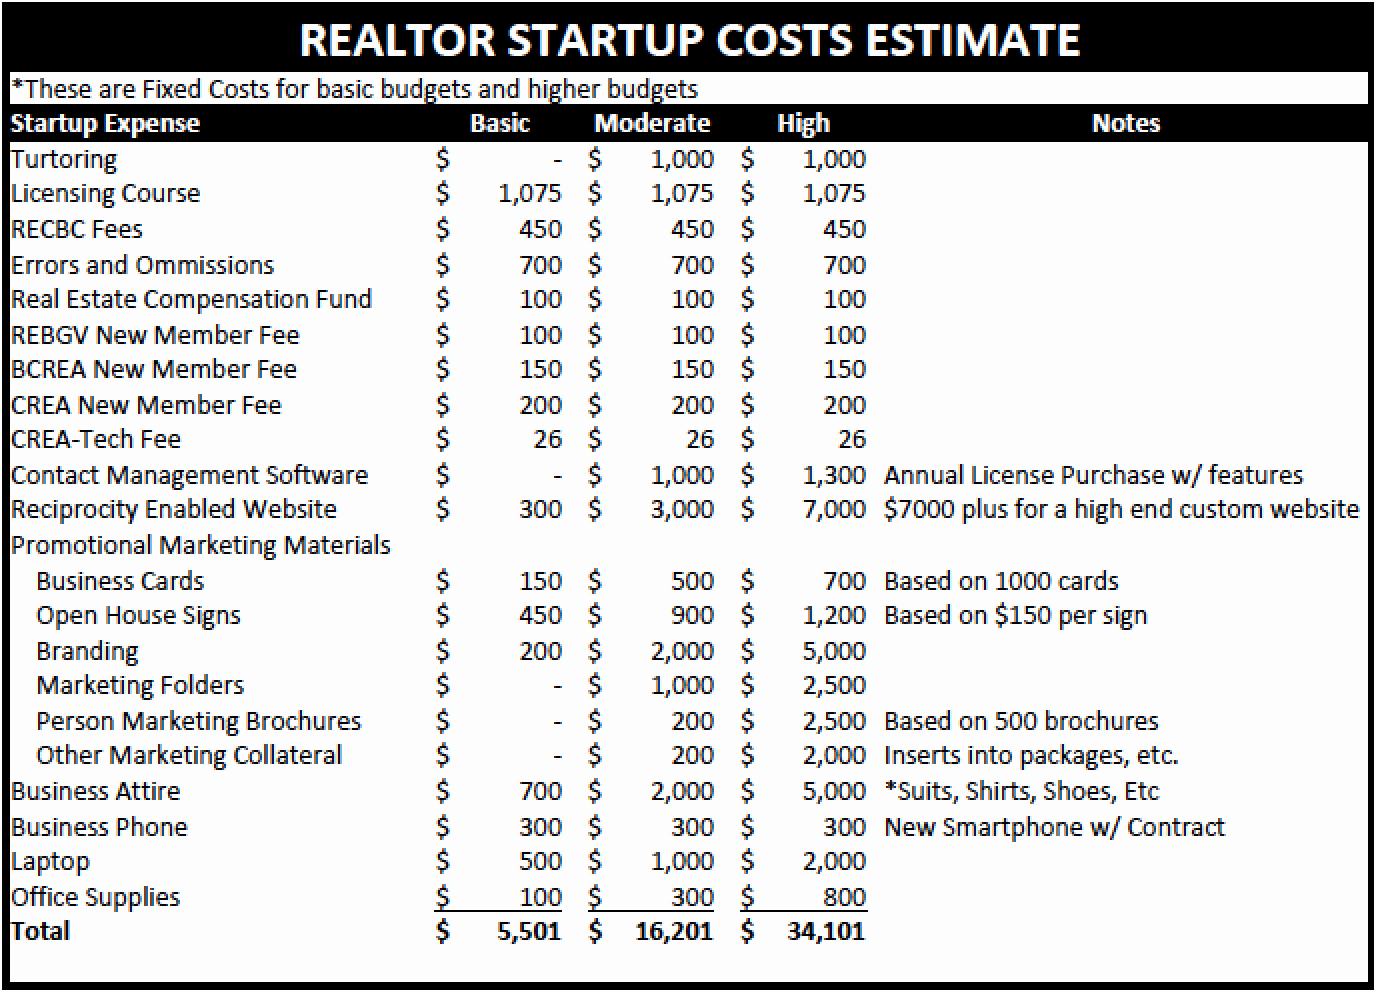 Business Start Up Costs Template Best Of the Costs Of Being A Realtor Startup Costs